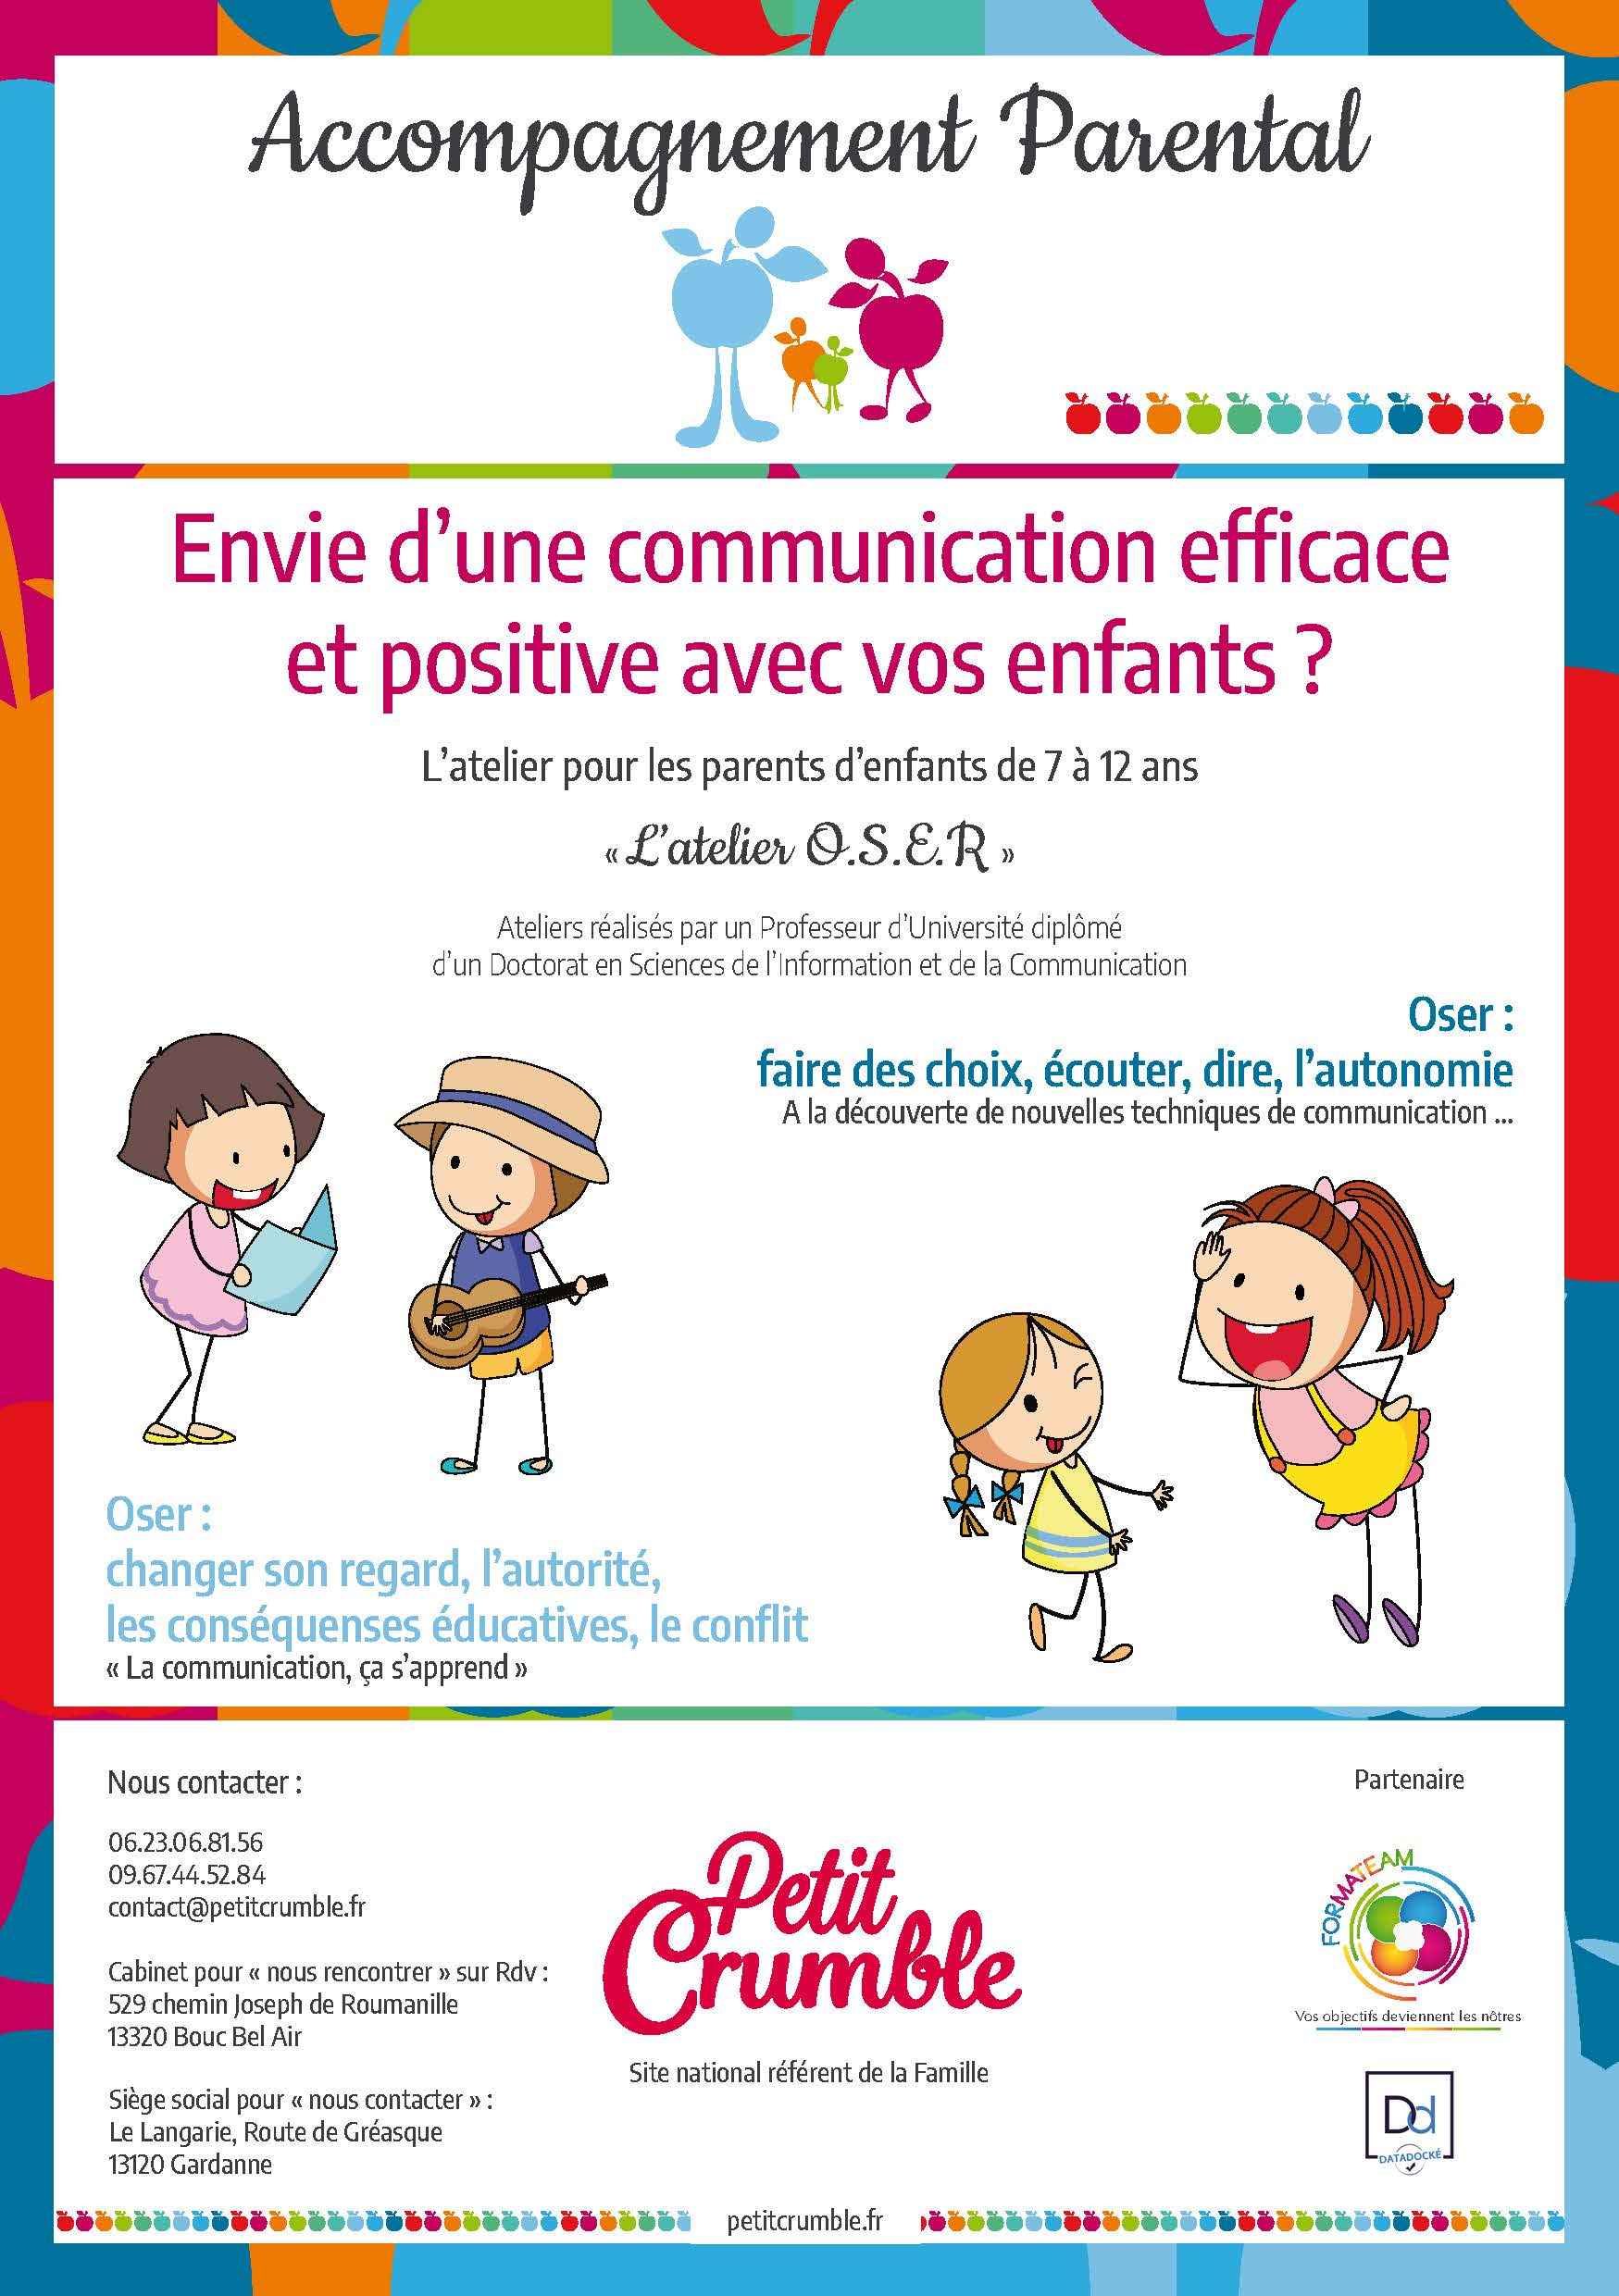 ACCOMPAGNEMENT-PARENTAL-7-10-1-min